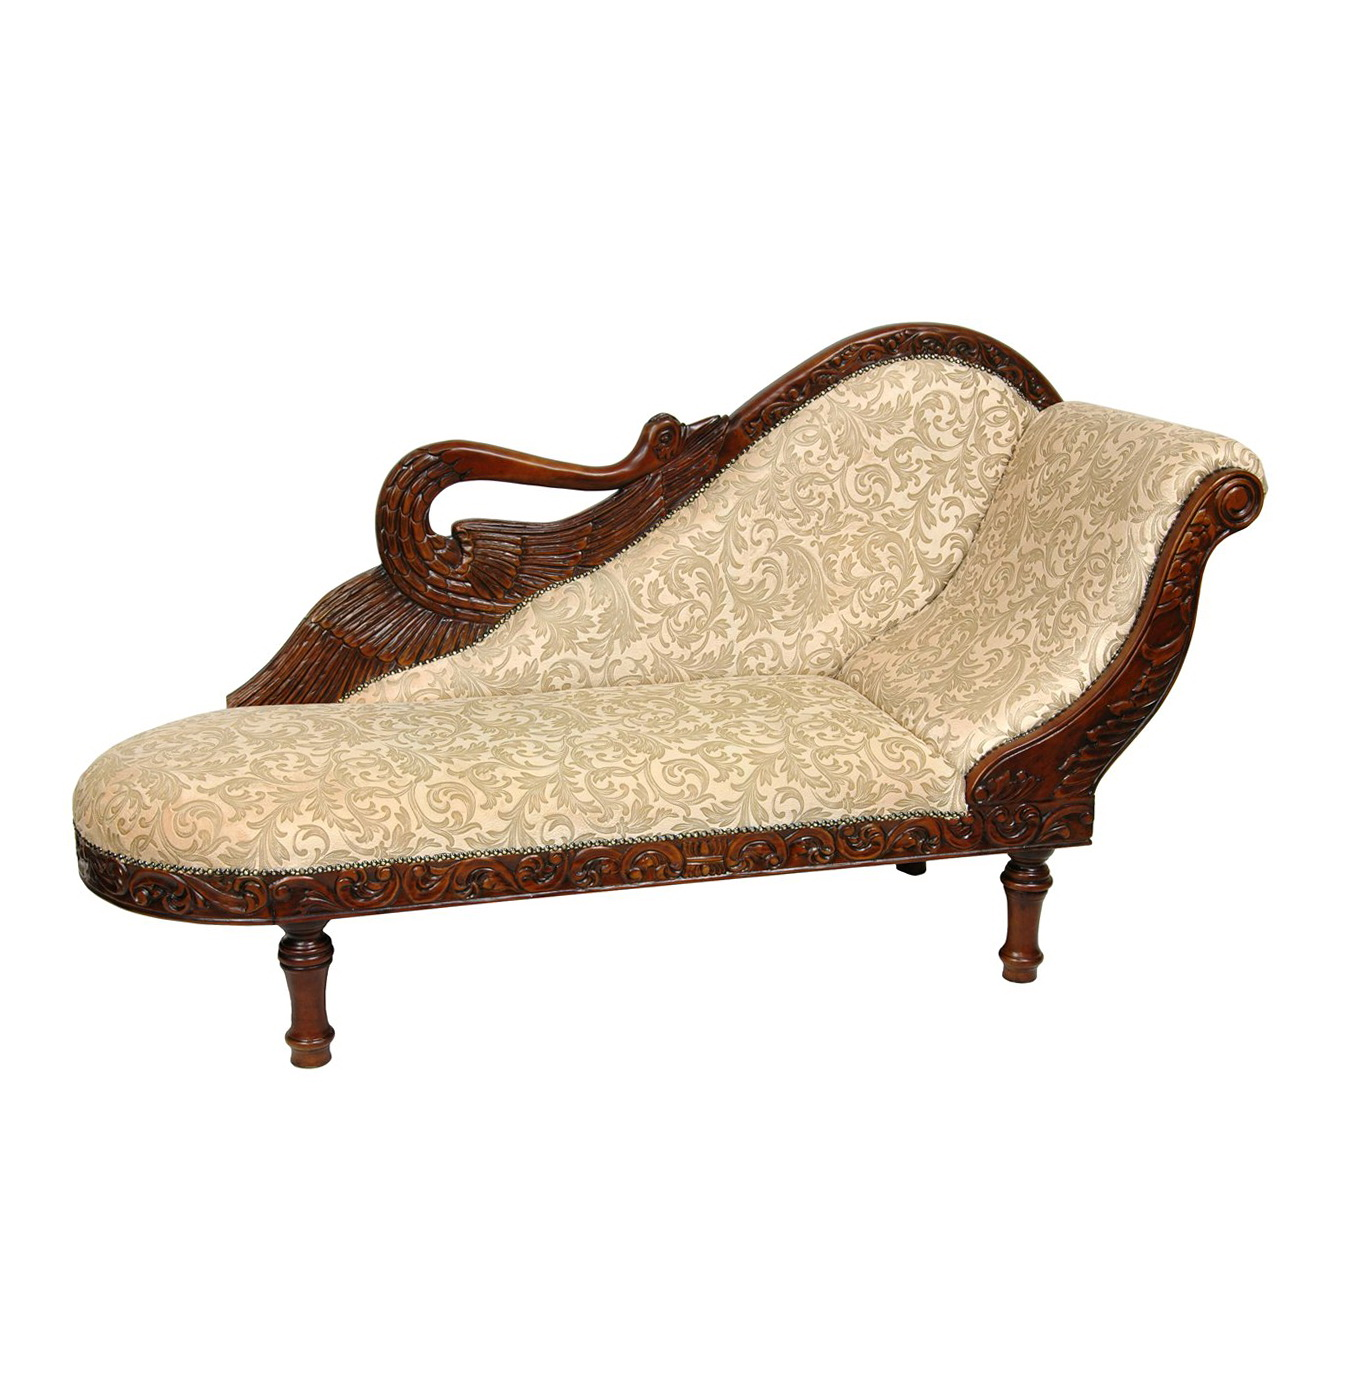 Permalink to Chaise Lounge Chairs Images